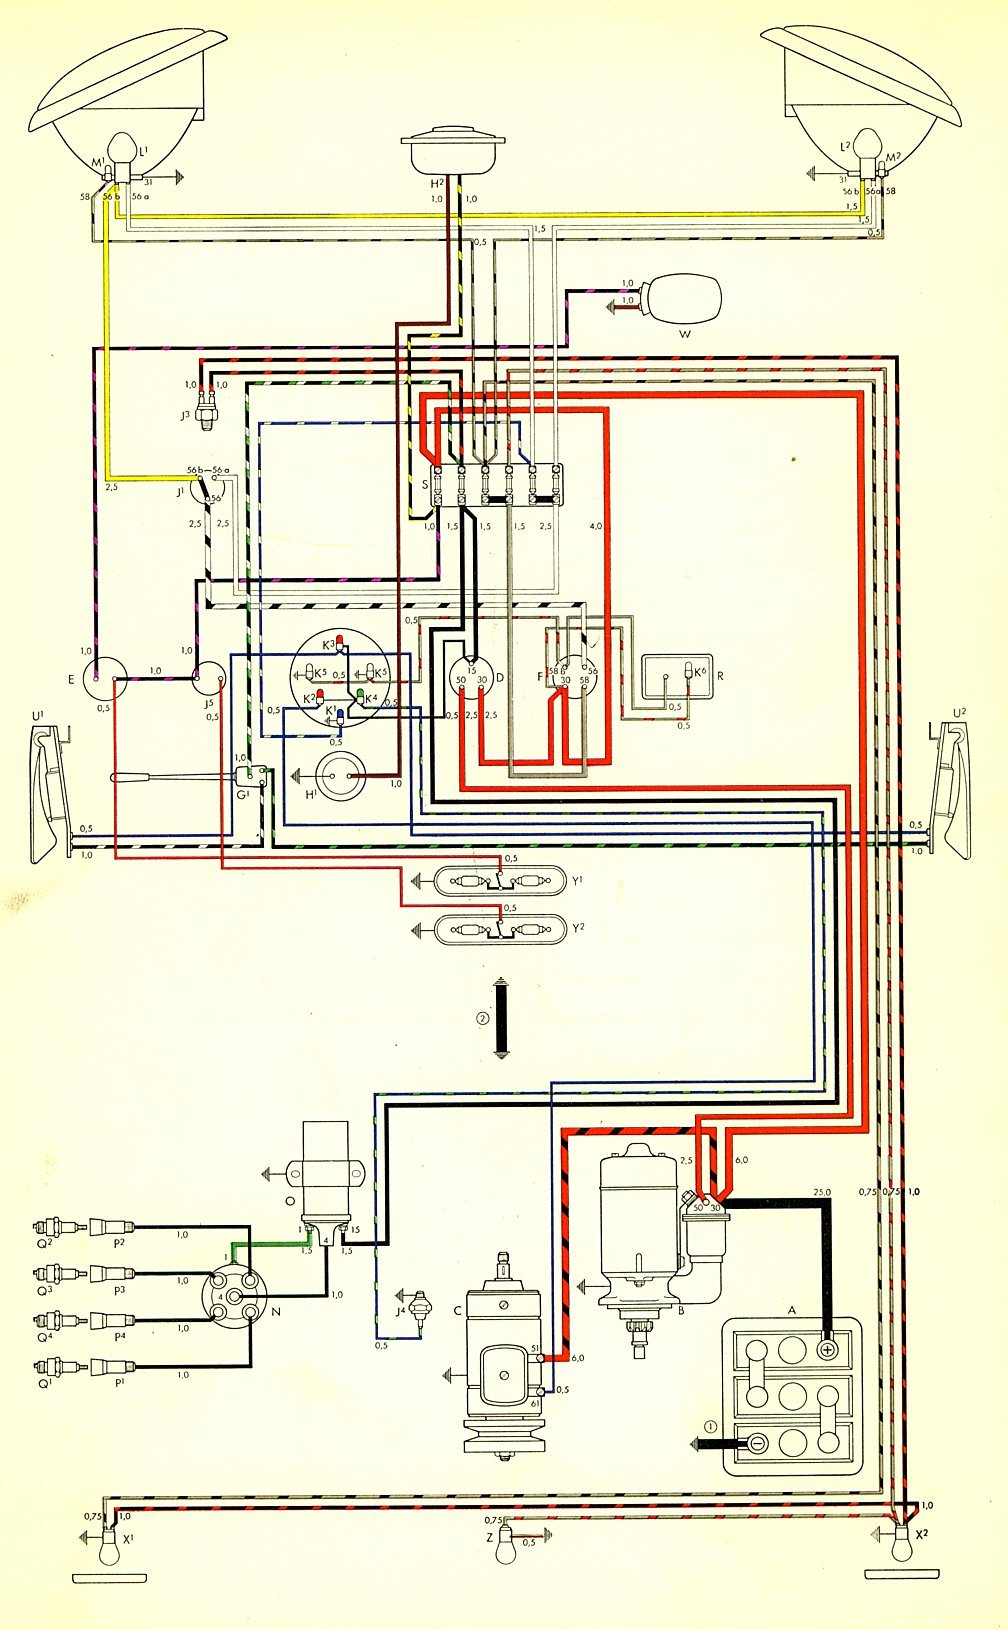 thesamba com type 2 wiring diagrams rh thesamba com 1980 vanagon wiring diagram vanagon wiring diagram pdf